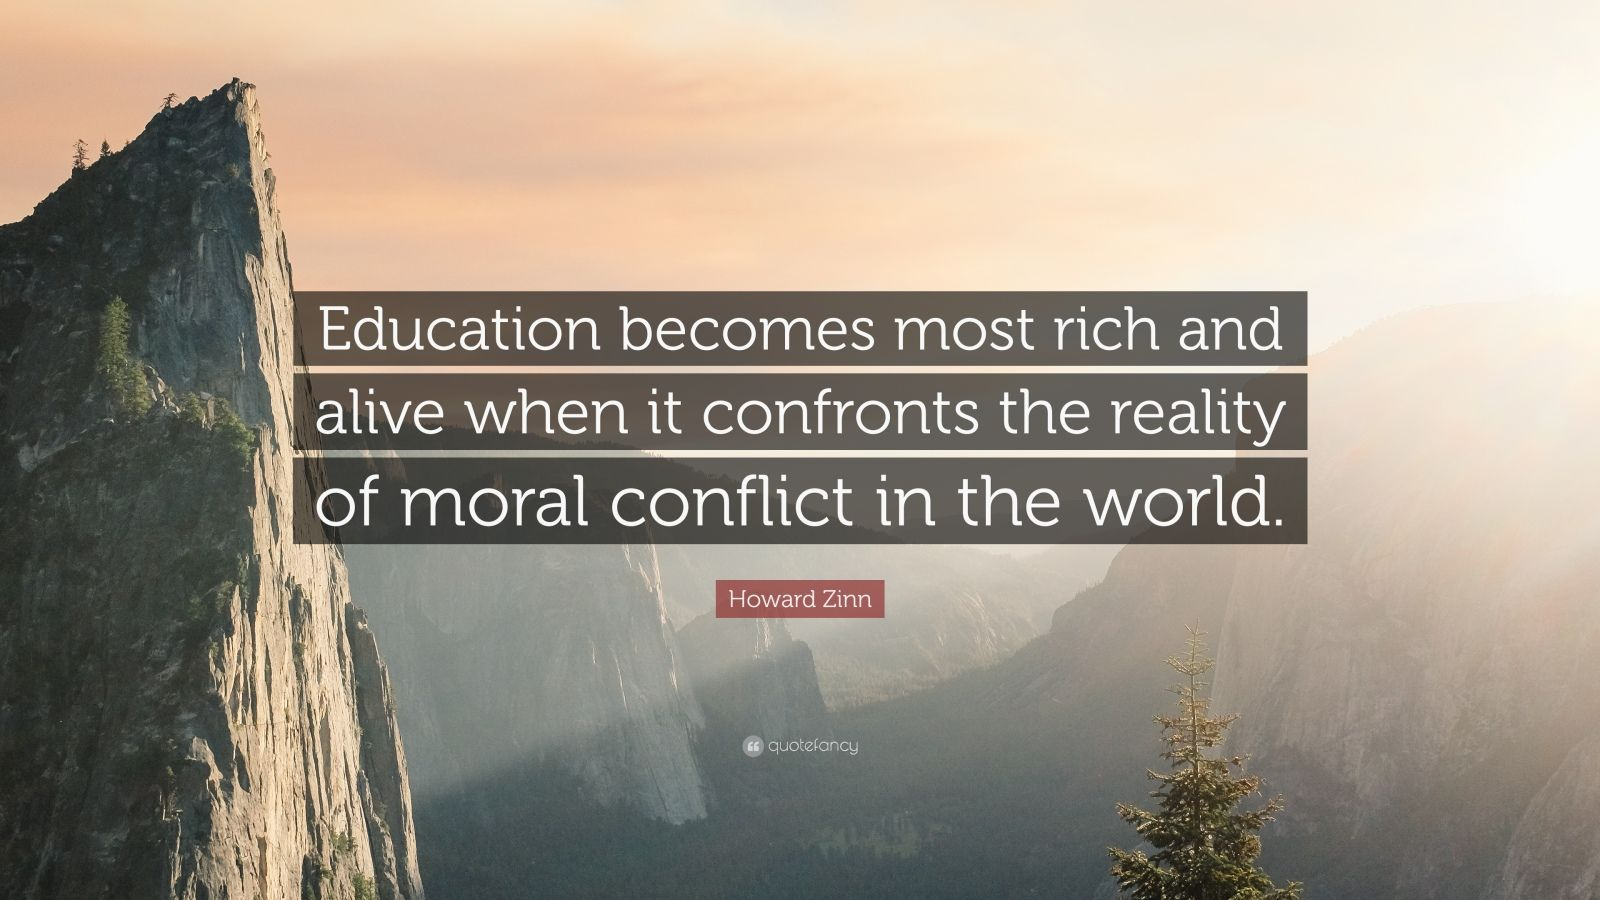 """Howard Zinn Quote: """"Education becomes most rich and alive when it confronts the reality of moral conflict in the world."""""""